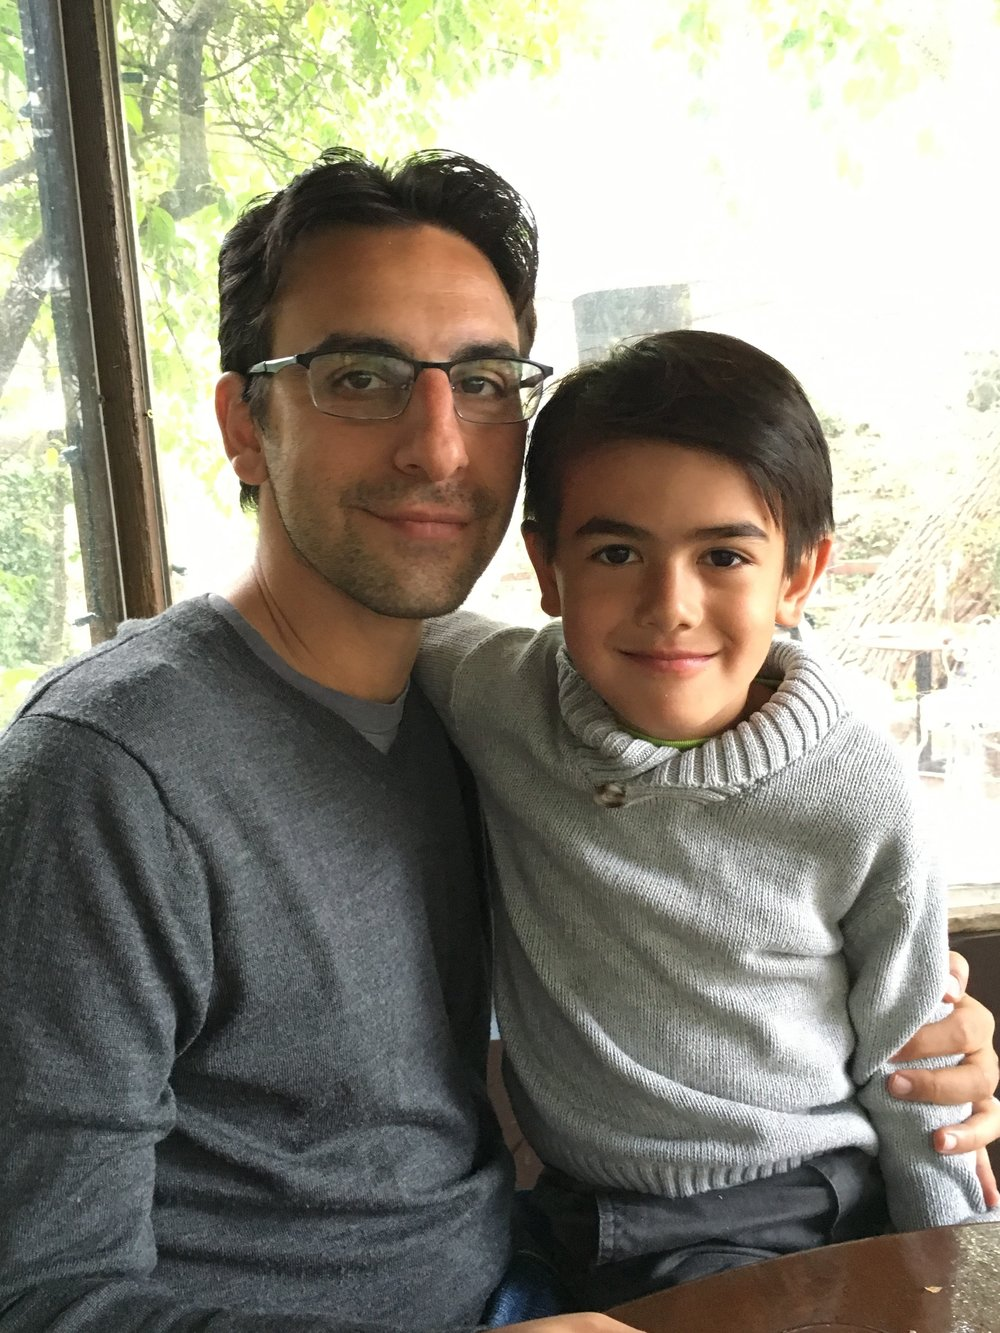 The author, Nafis Shafizadeh, and his four-year-old son Kamil.